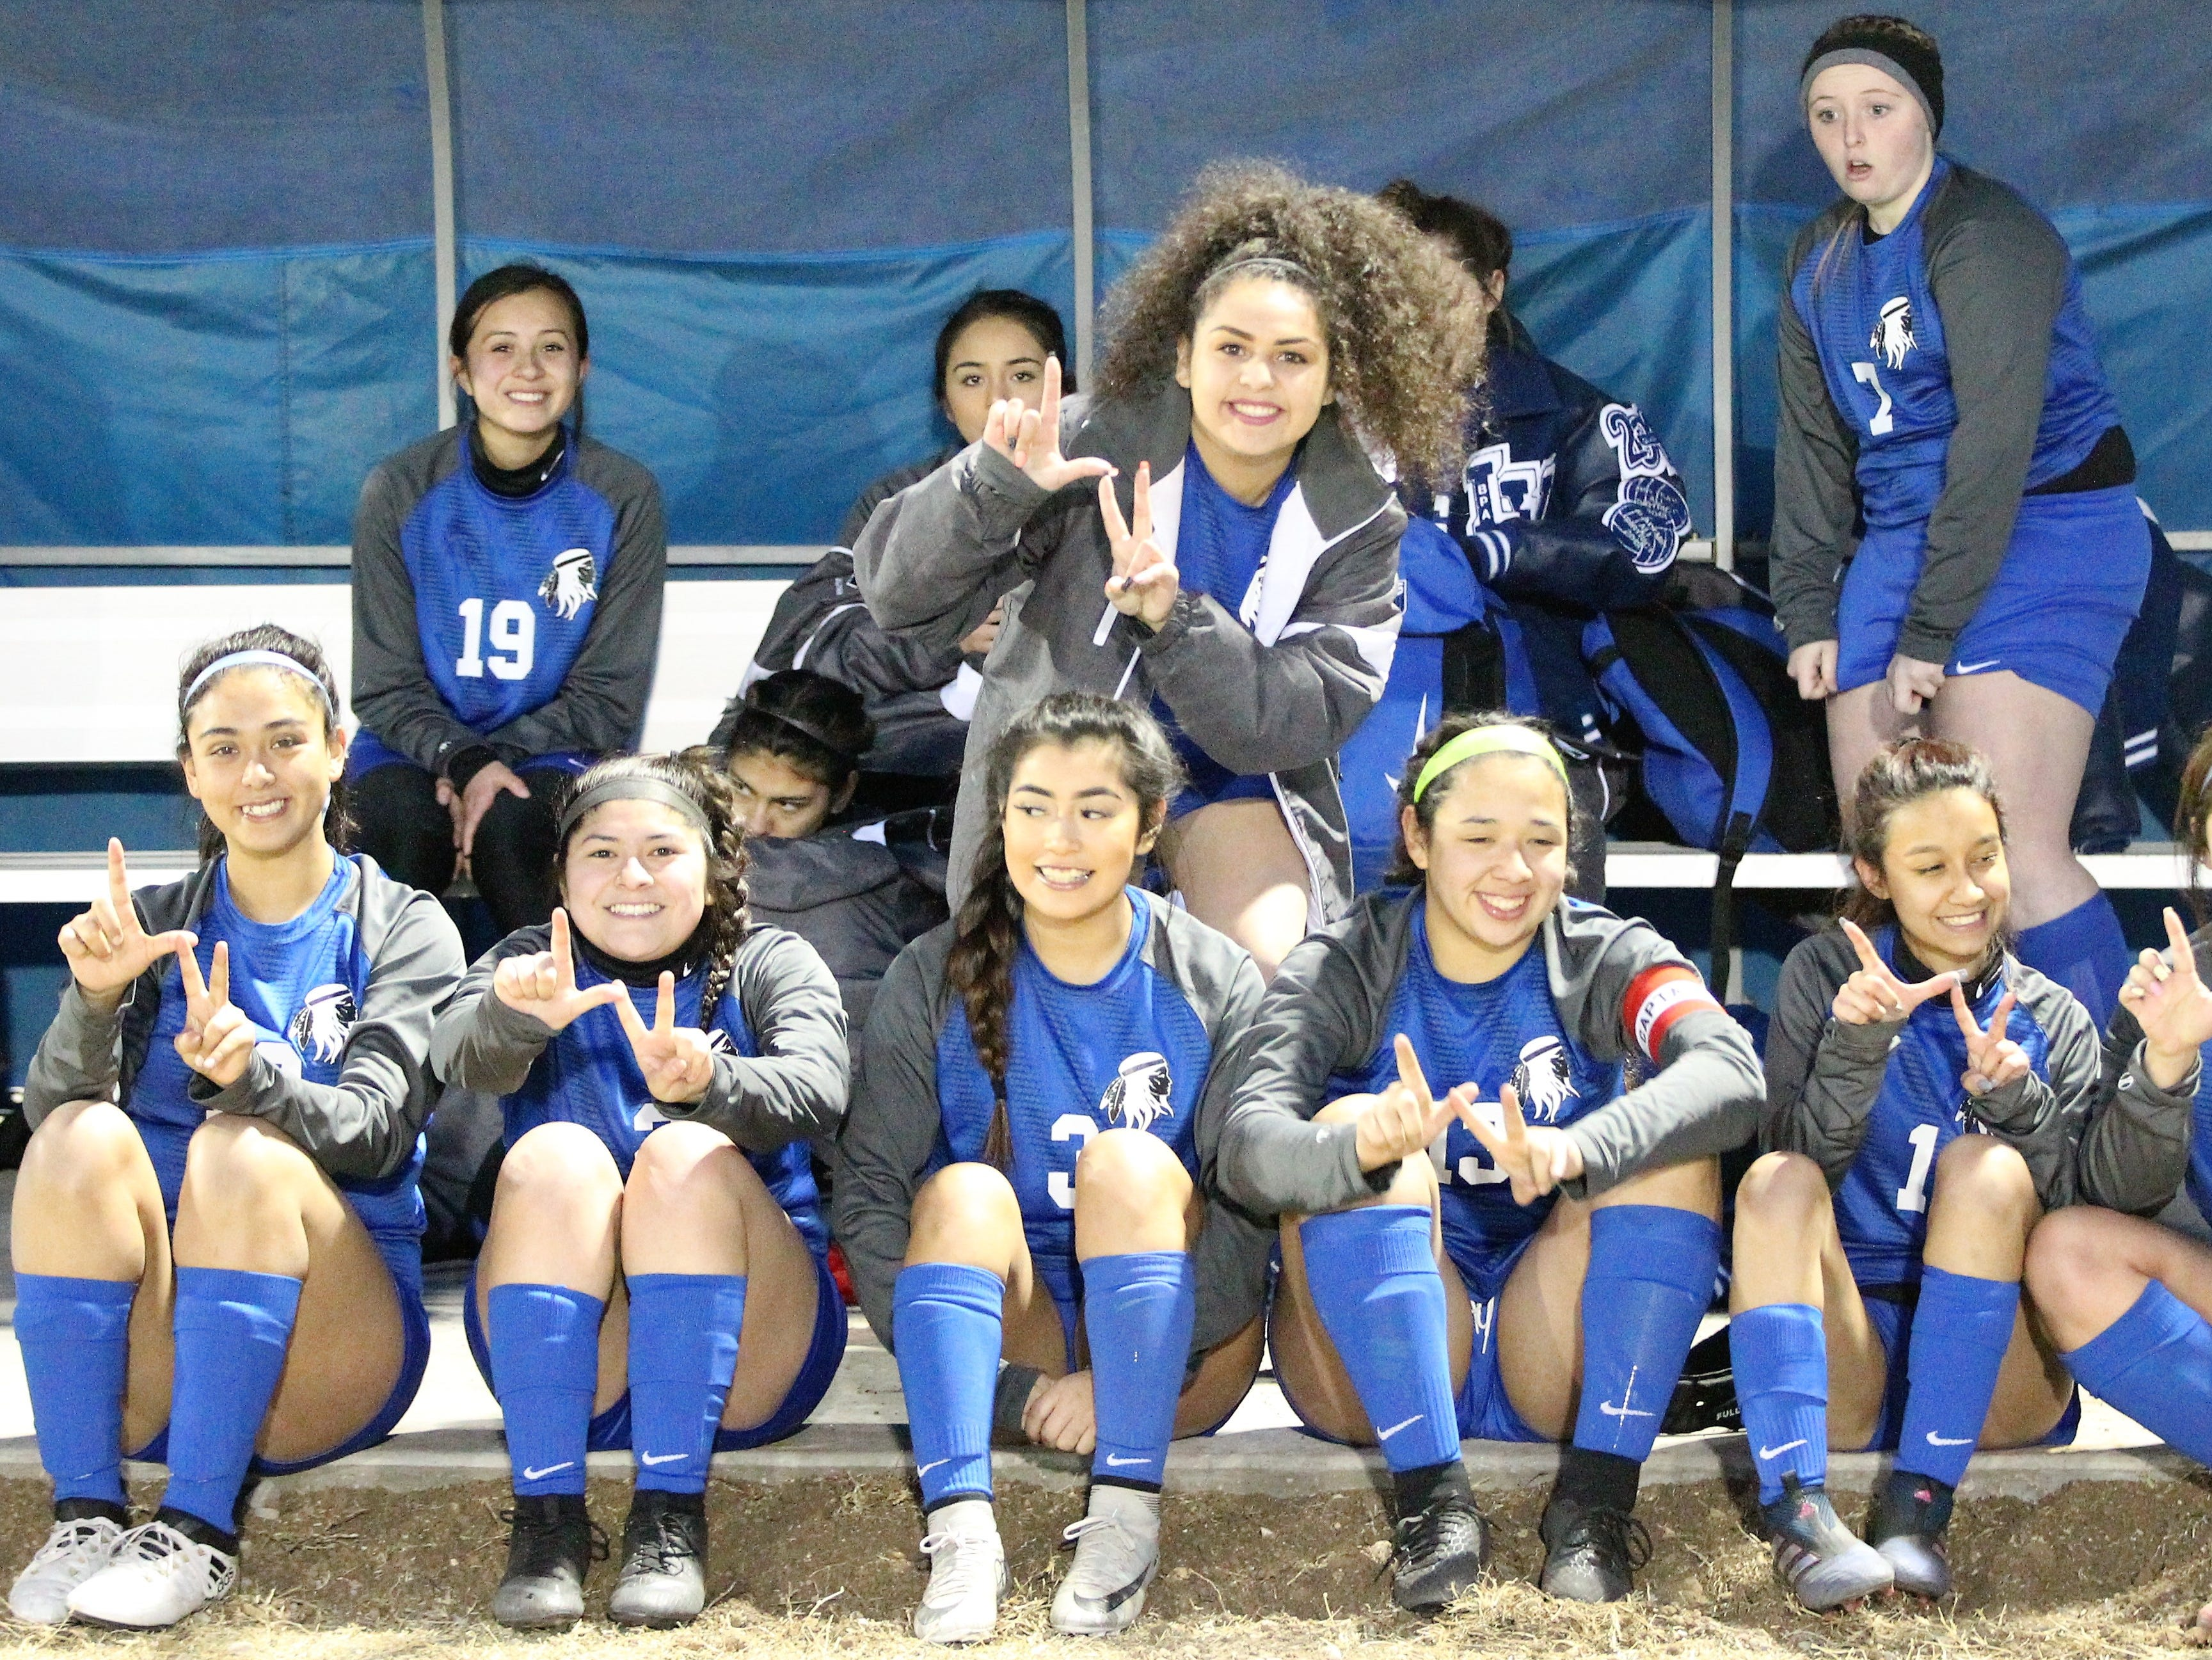 The Lake View Maidens were in a festive mood after leading 8-0 at the half in a District 4-4A soccer match against Snyder at Old Bobcat Stadium on Tuesday, March 5, 2019. Lake View won 8-0 to secure the 4-4A crown.